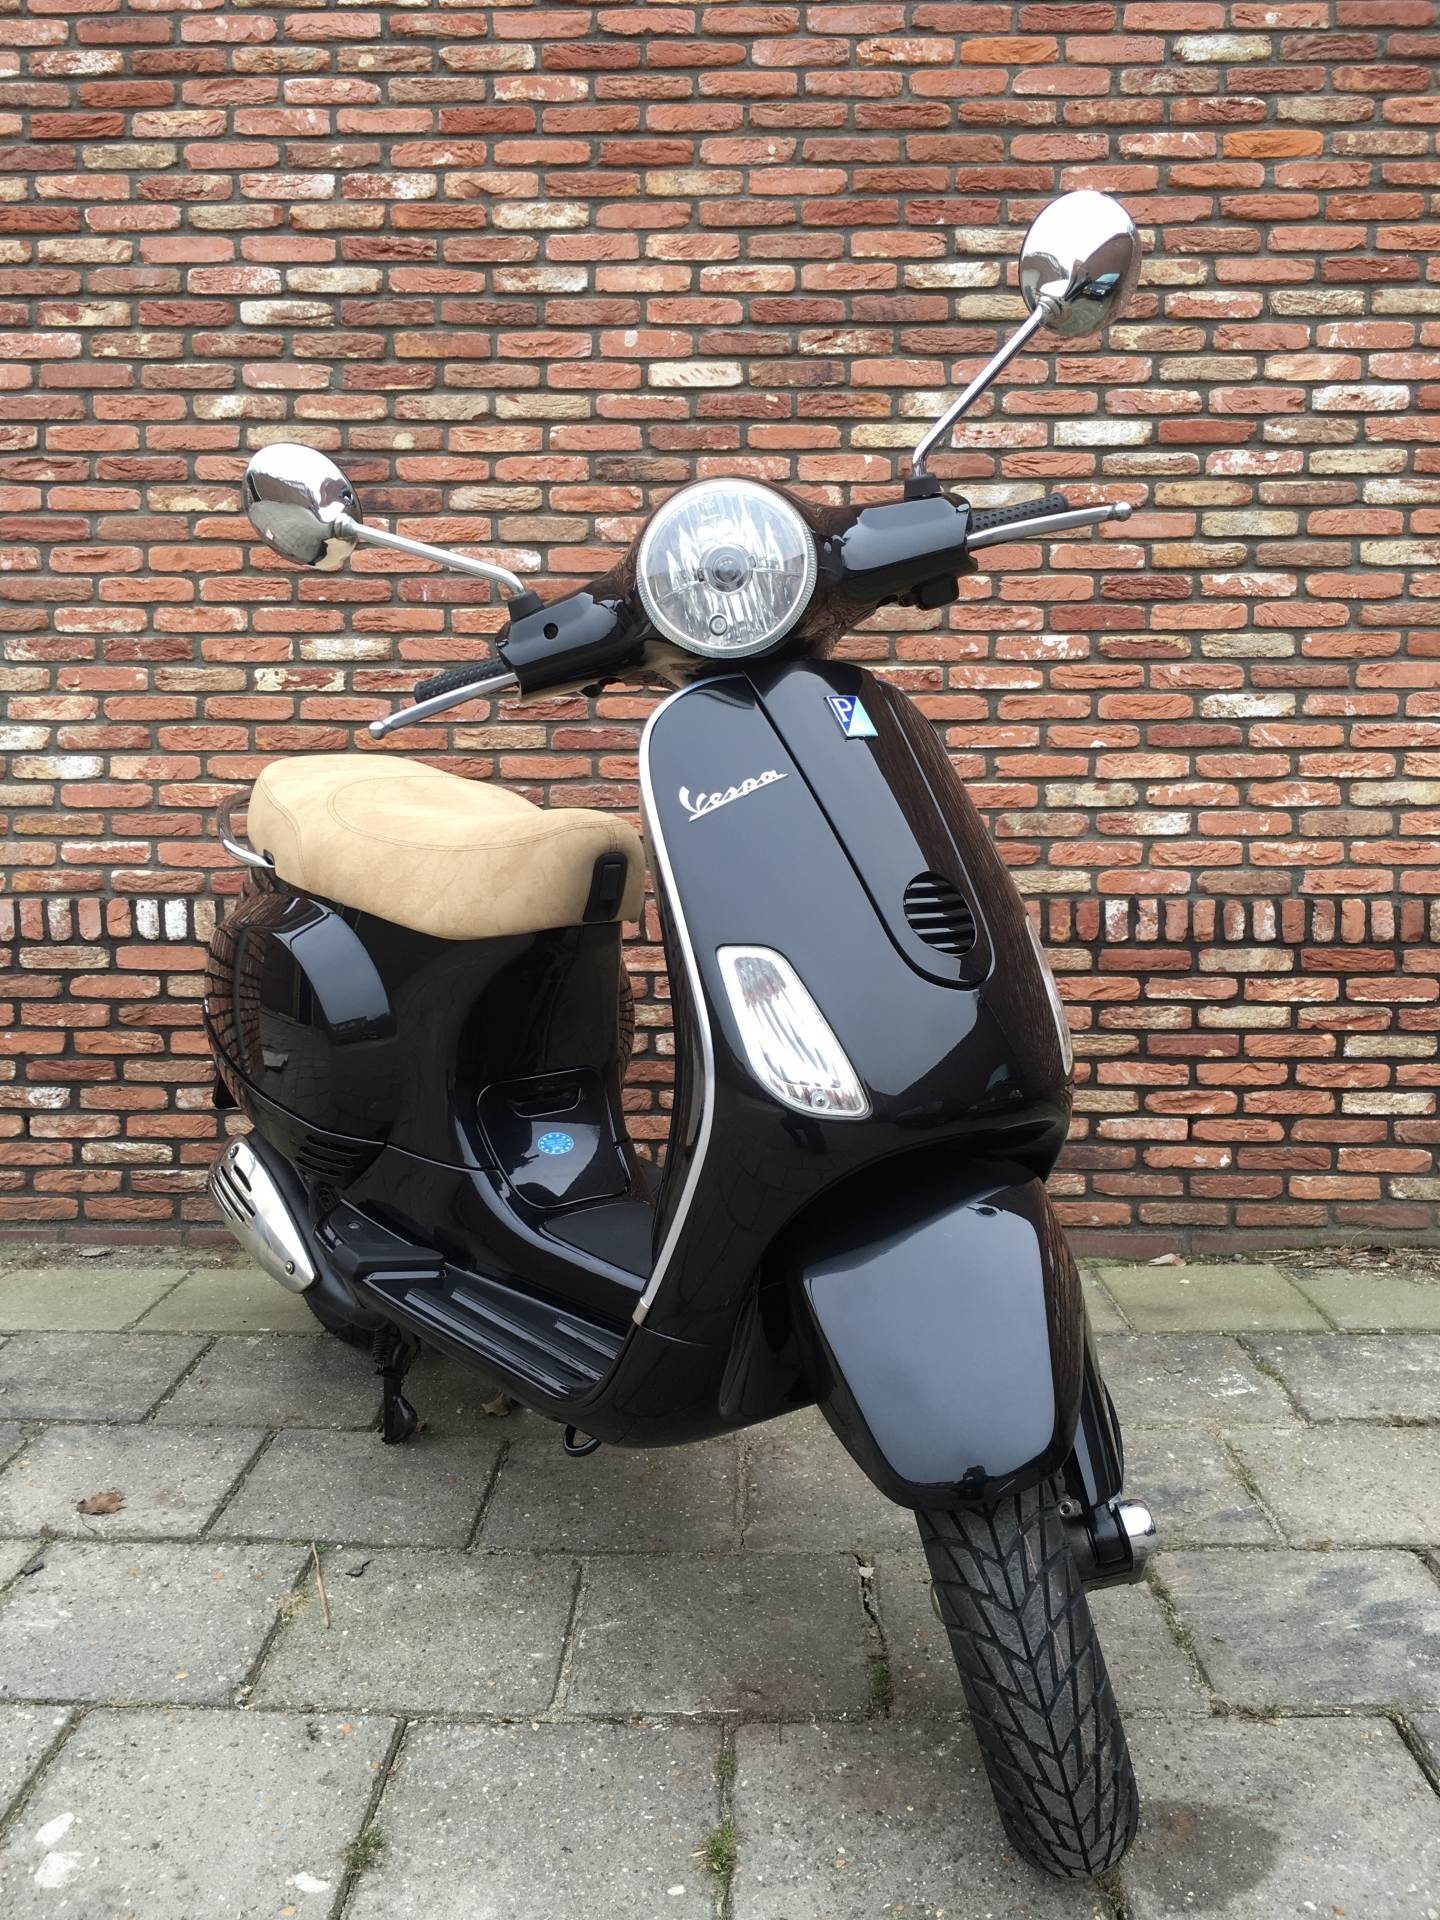 tweedehands scooters motorscooters en brommers bij tensen 2wielers westland tweedehands. Black Bedroom Furniture Sets. Home Design Ideas